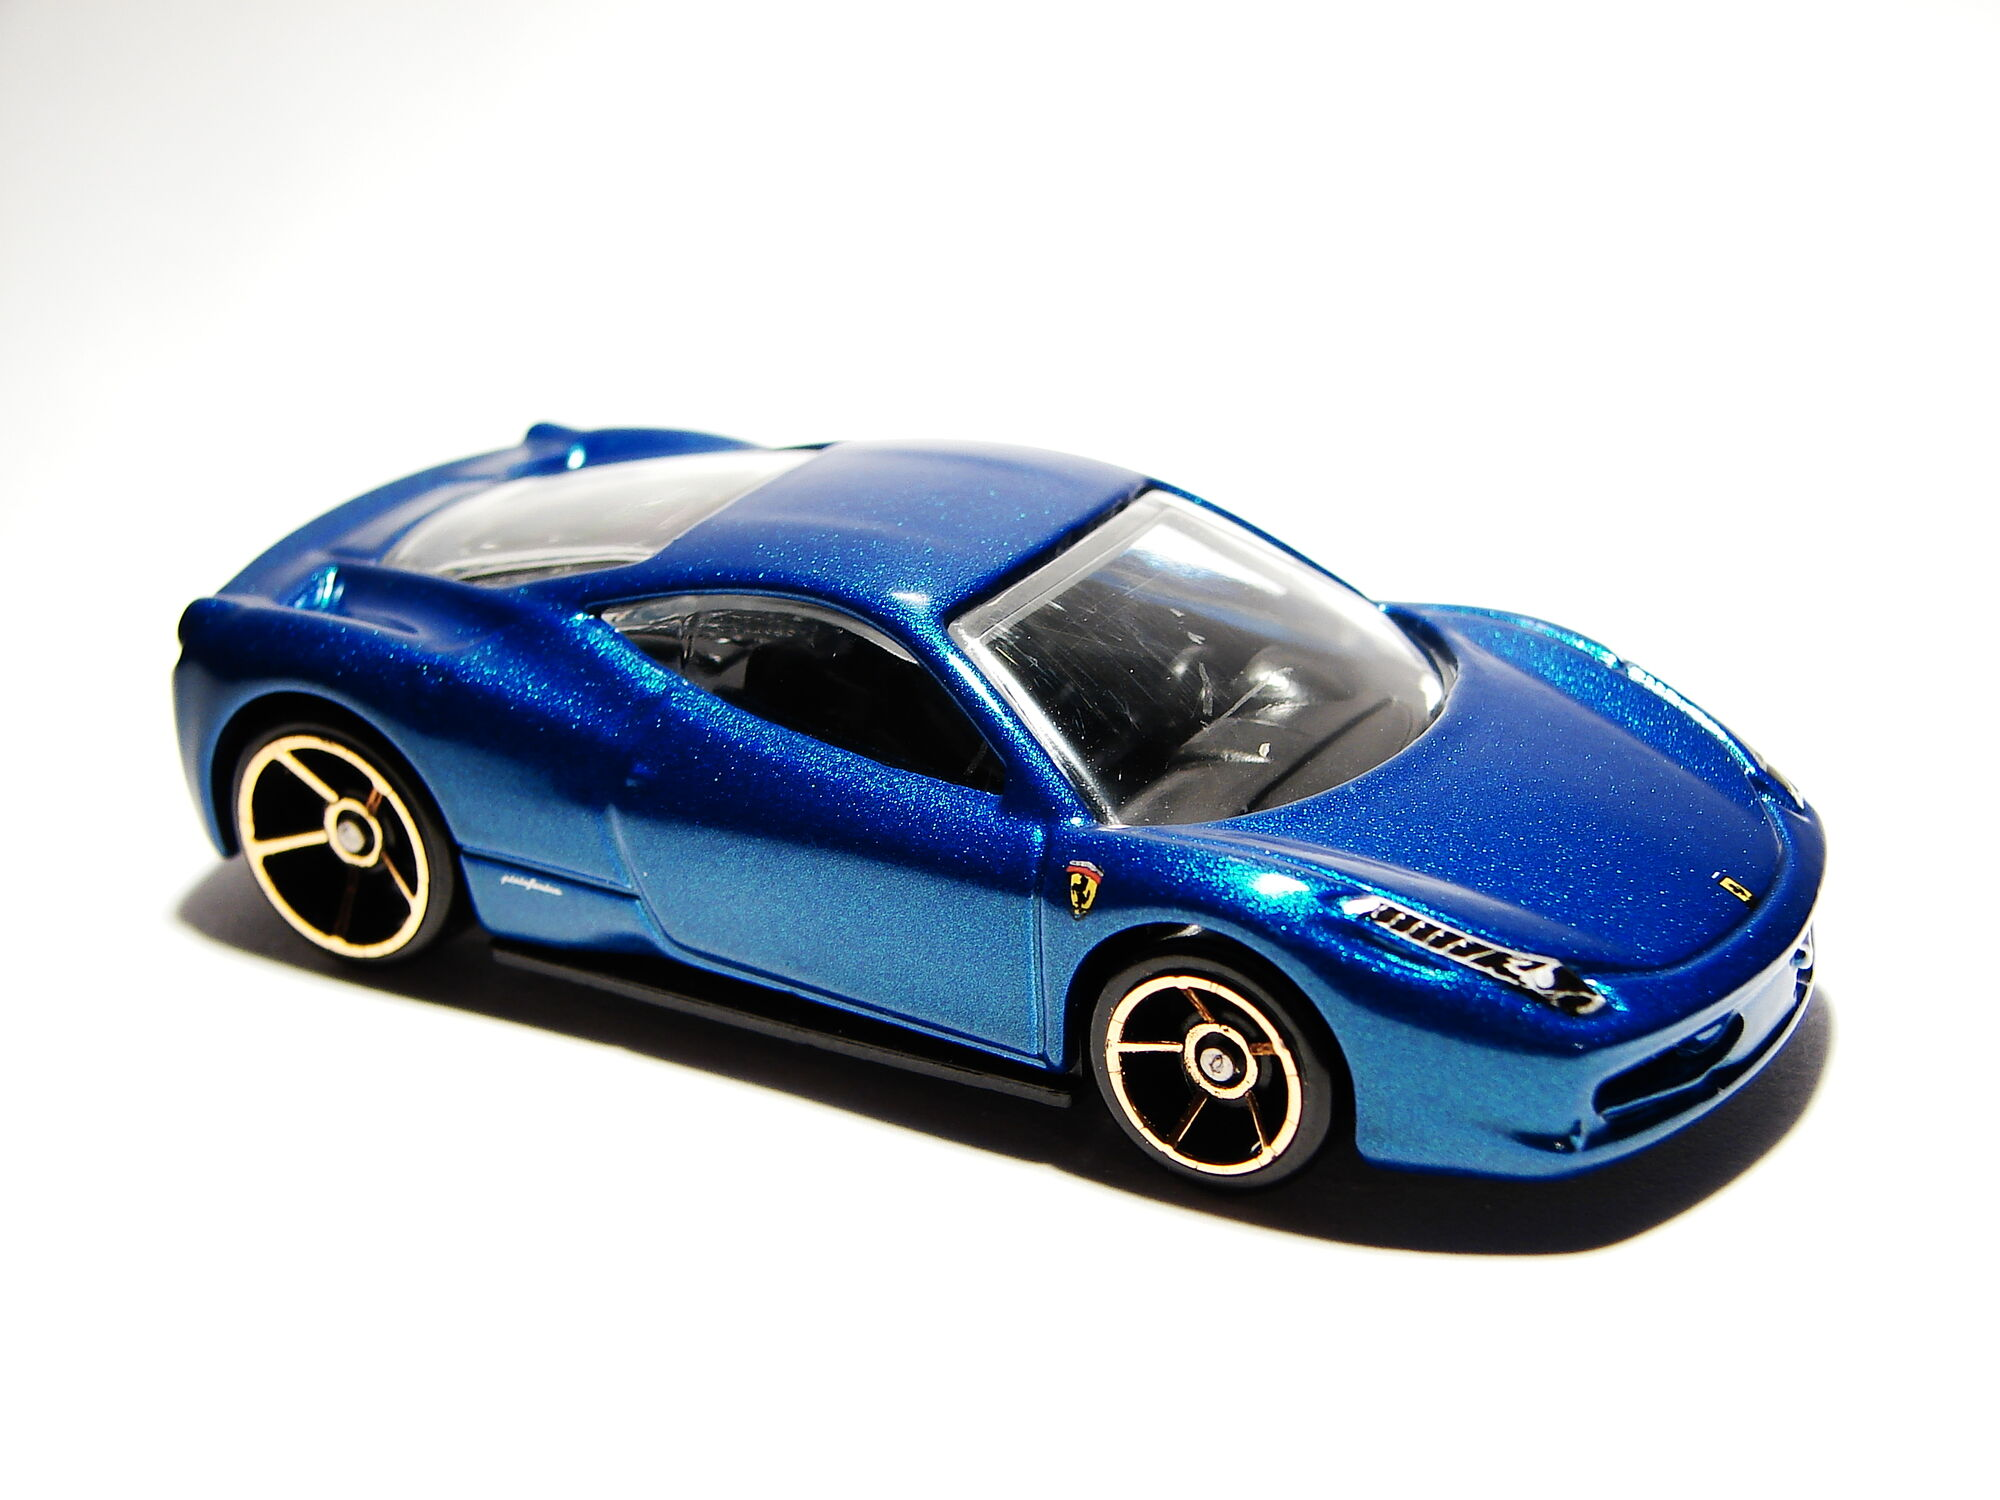 image ferrari 458 italia 04 jpg hot wheels wiki. Black Bedroom Furniture Sets. Home Design Ideas